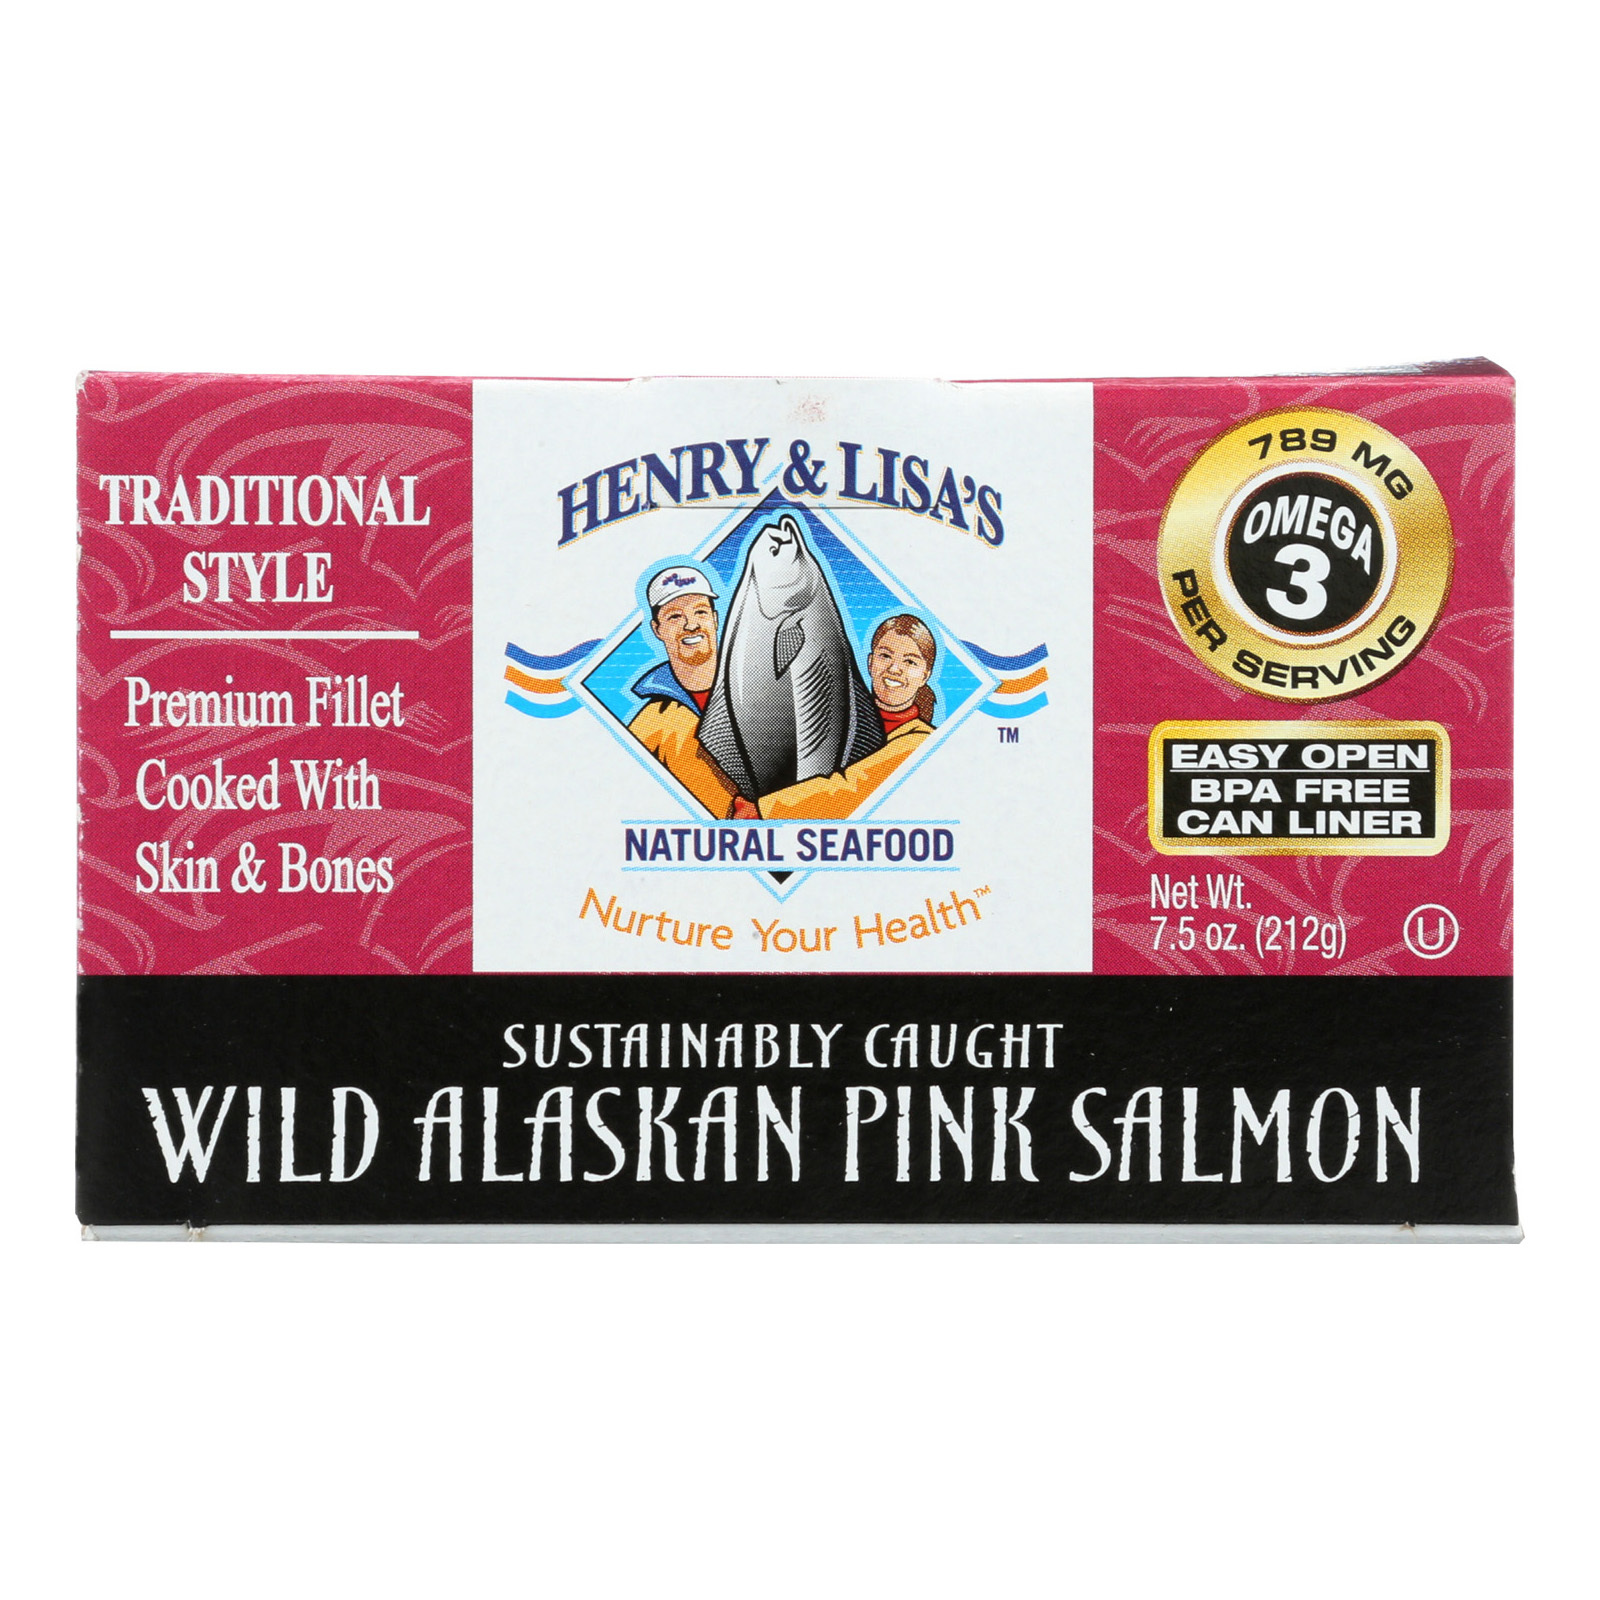 Henry and Lisa's Natural Seafood Wild Alaskan Pink Salmon - Case of 12 - 7.5 oz.